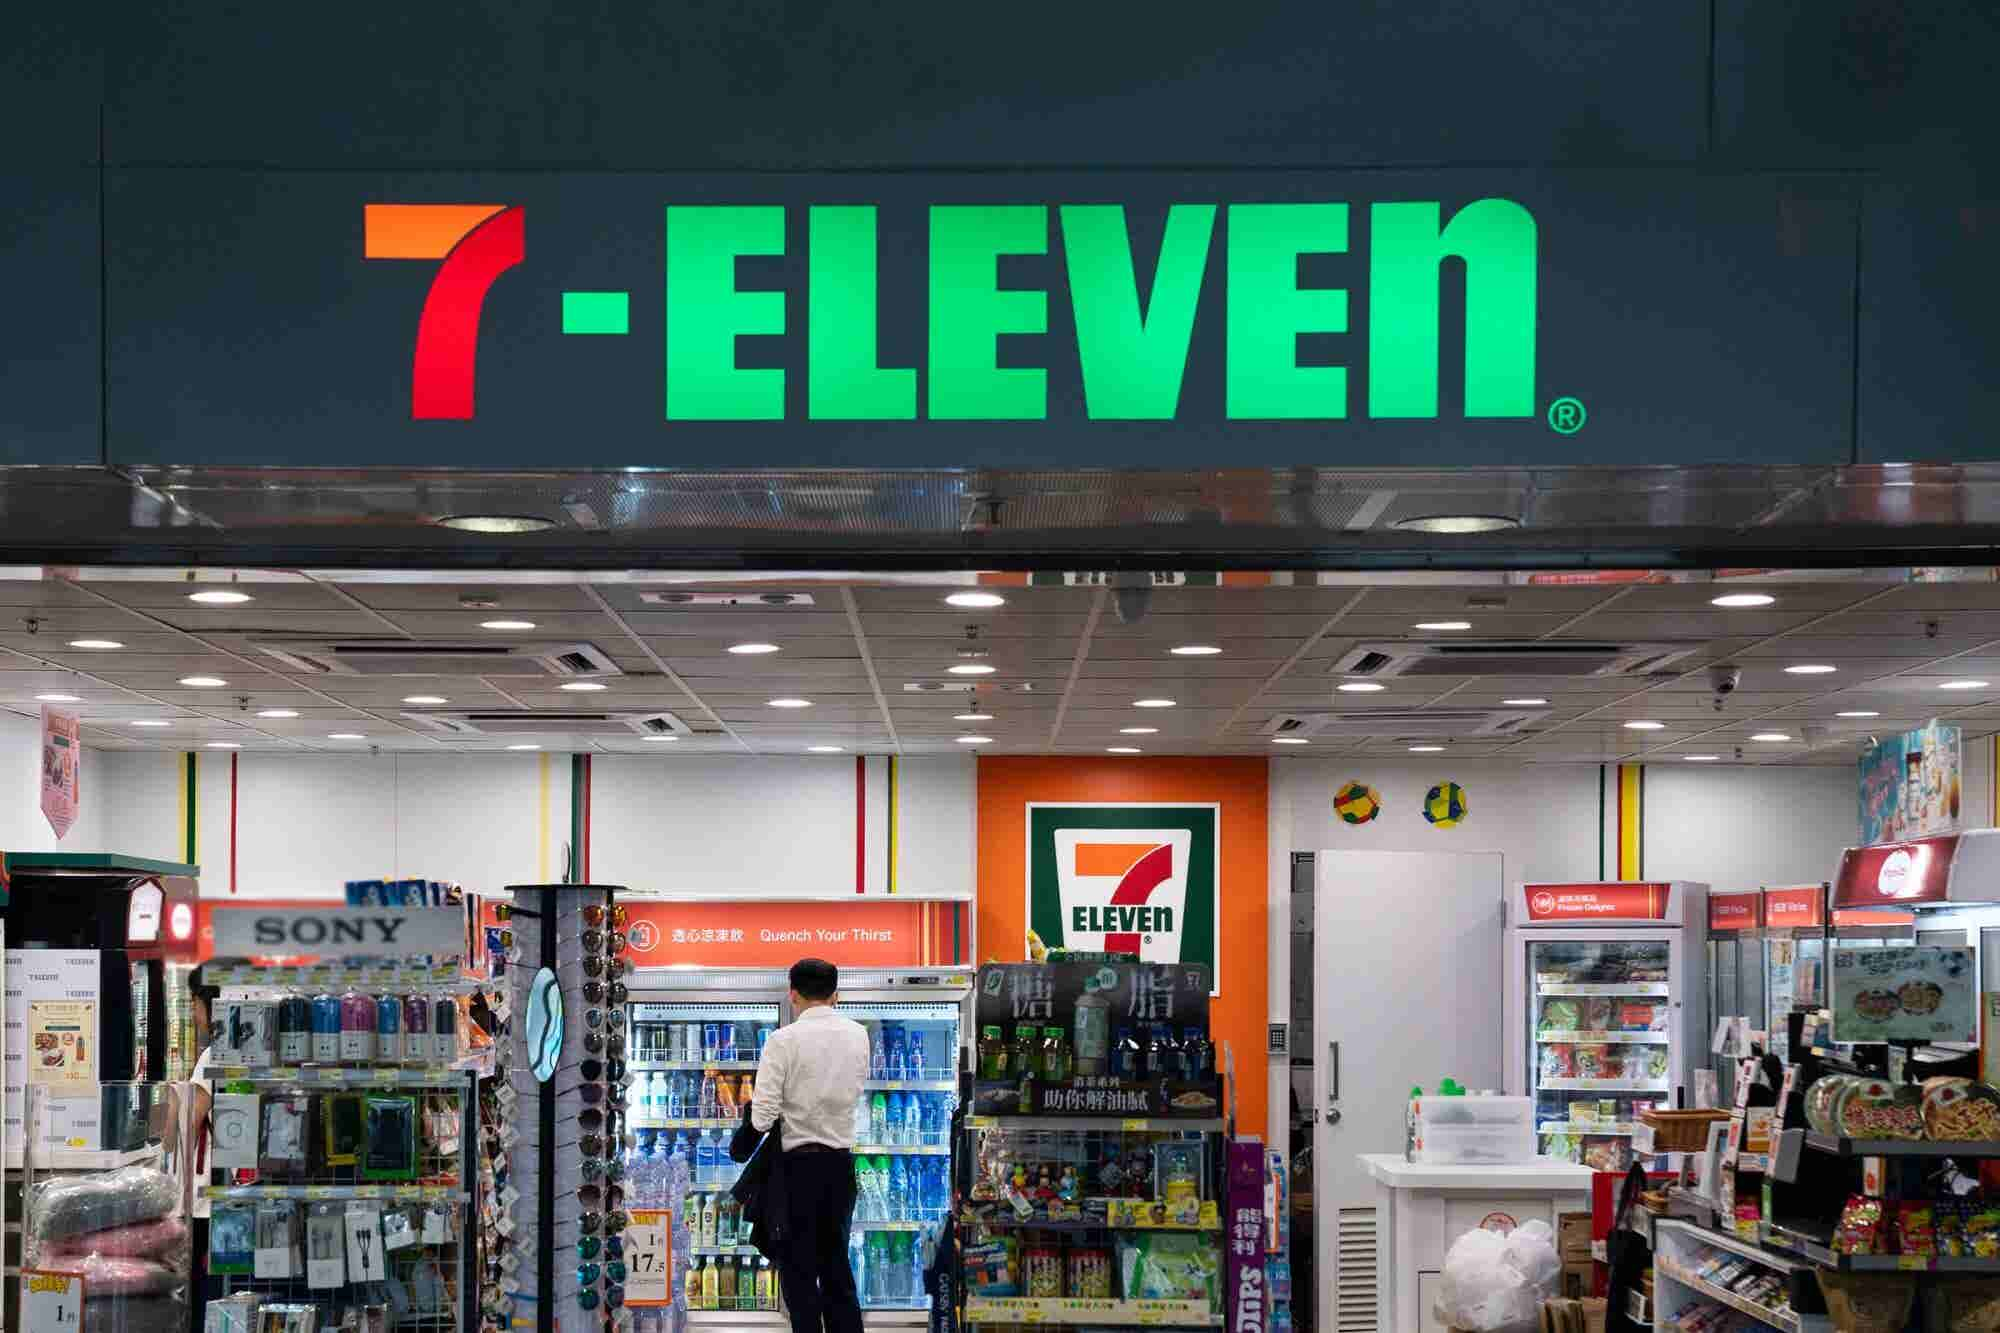 Why 7-Eleven Franchisees May Have to Pay Another $50,000 and Work on Christmas